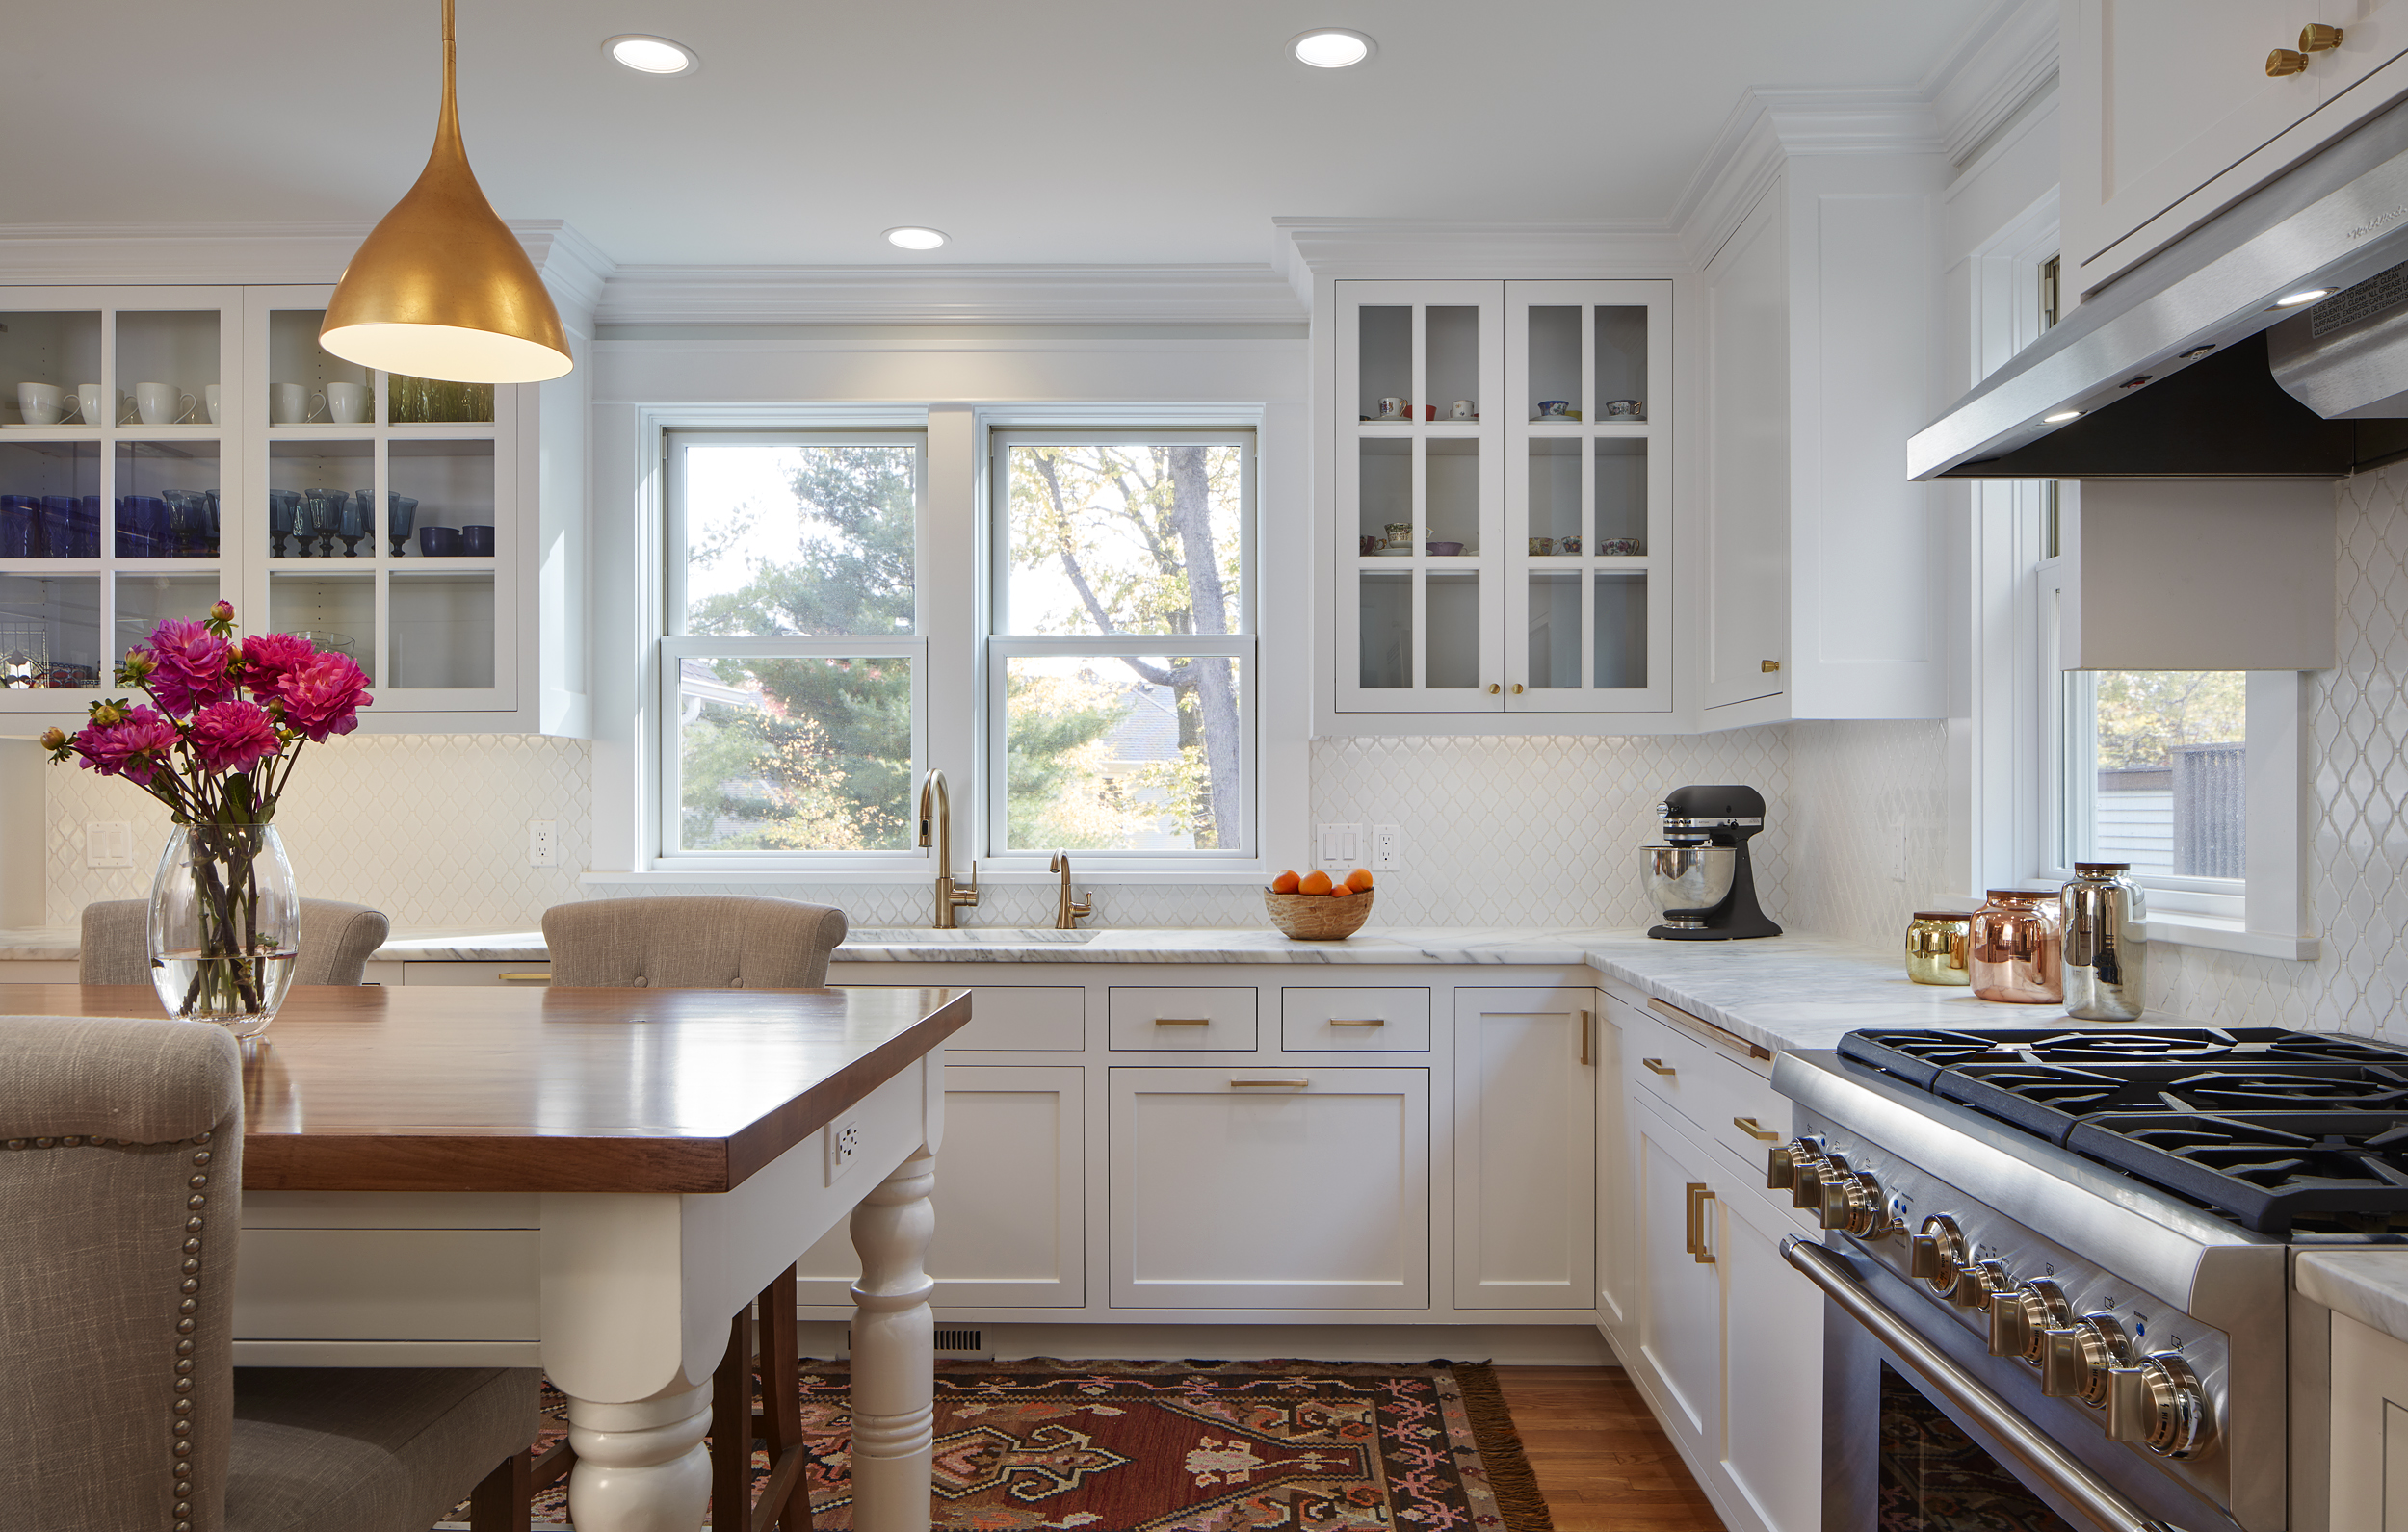 The remodeled kitchen overlooks the large pines on the Lake Harriet hillside.  Some of its features include brass hardware and marble countertops.